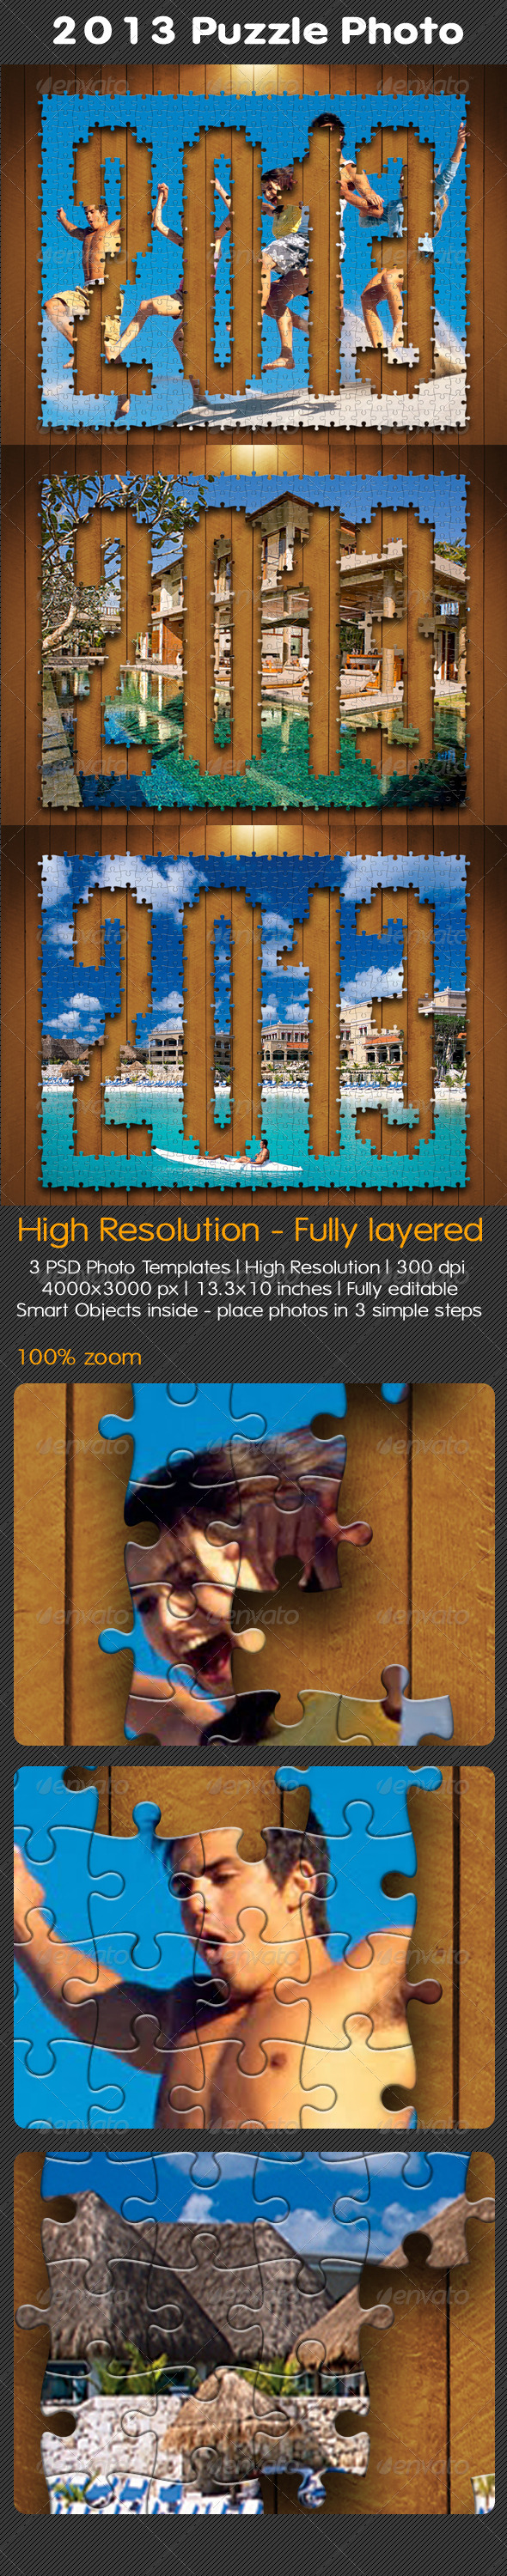 GraphicRiver 2013 Puzzle Photo 5151189